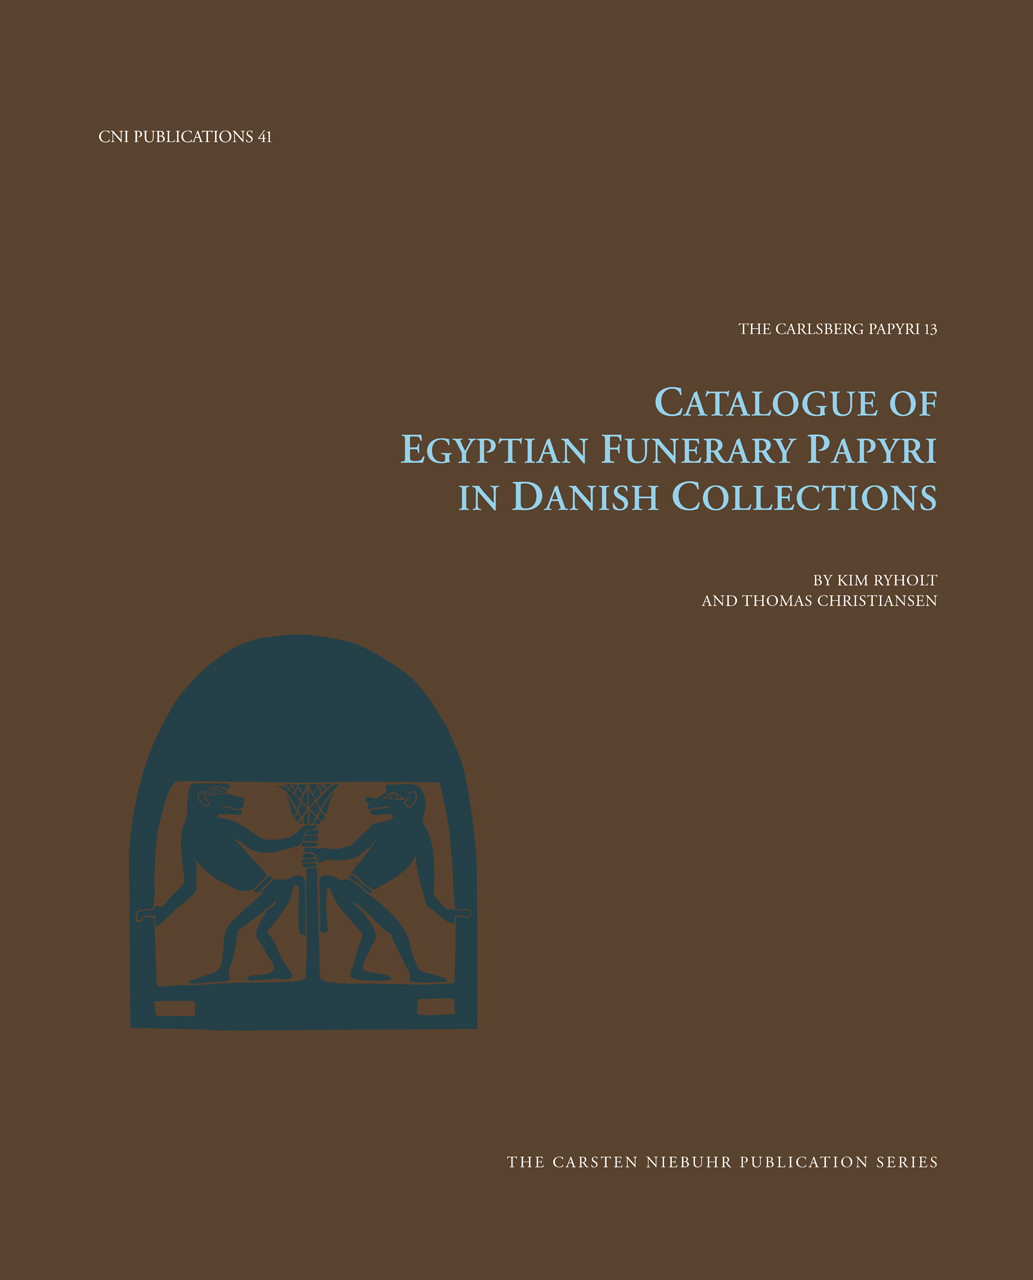 Catalogue of Egyptian Funerary Papyri in Danish Collections